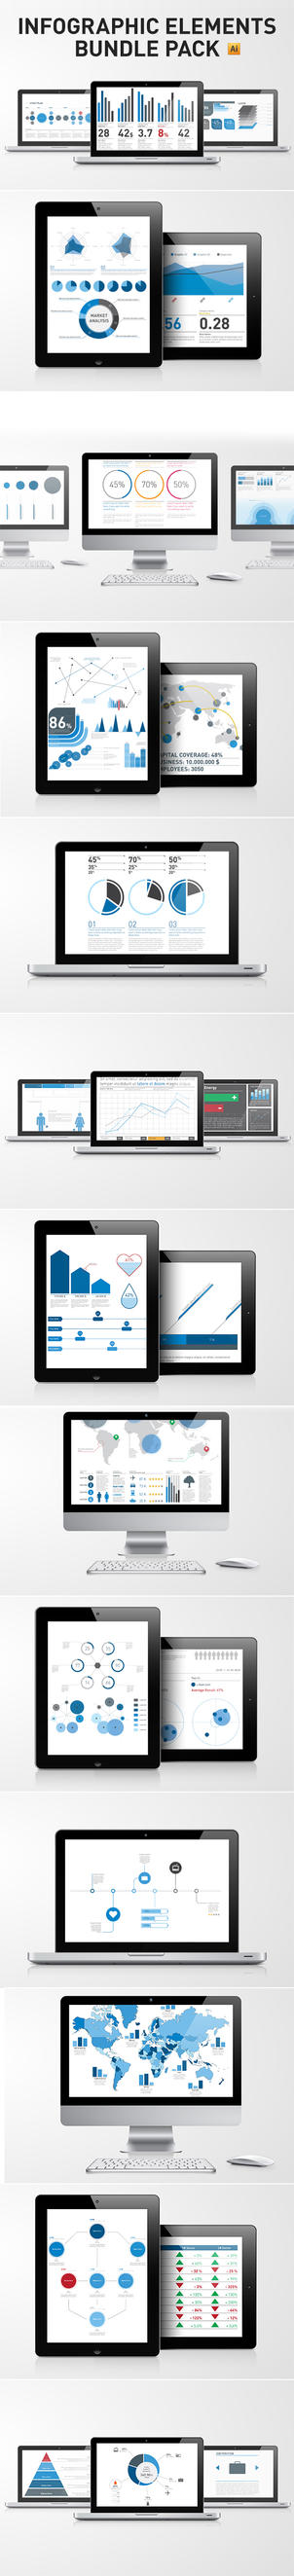 Infographic Elements Template Bundle Pack by andre2886